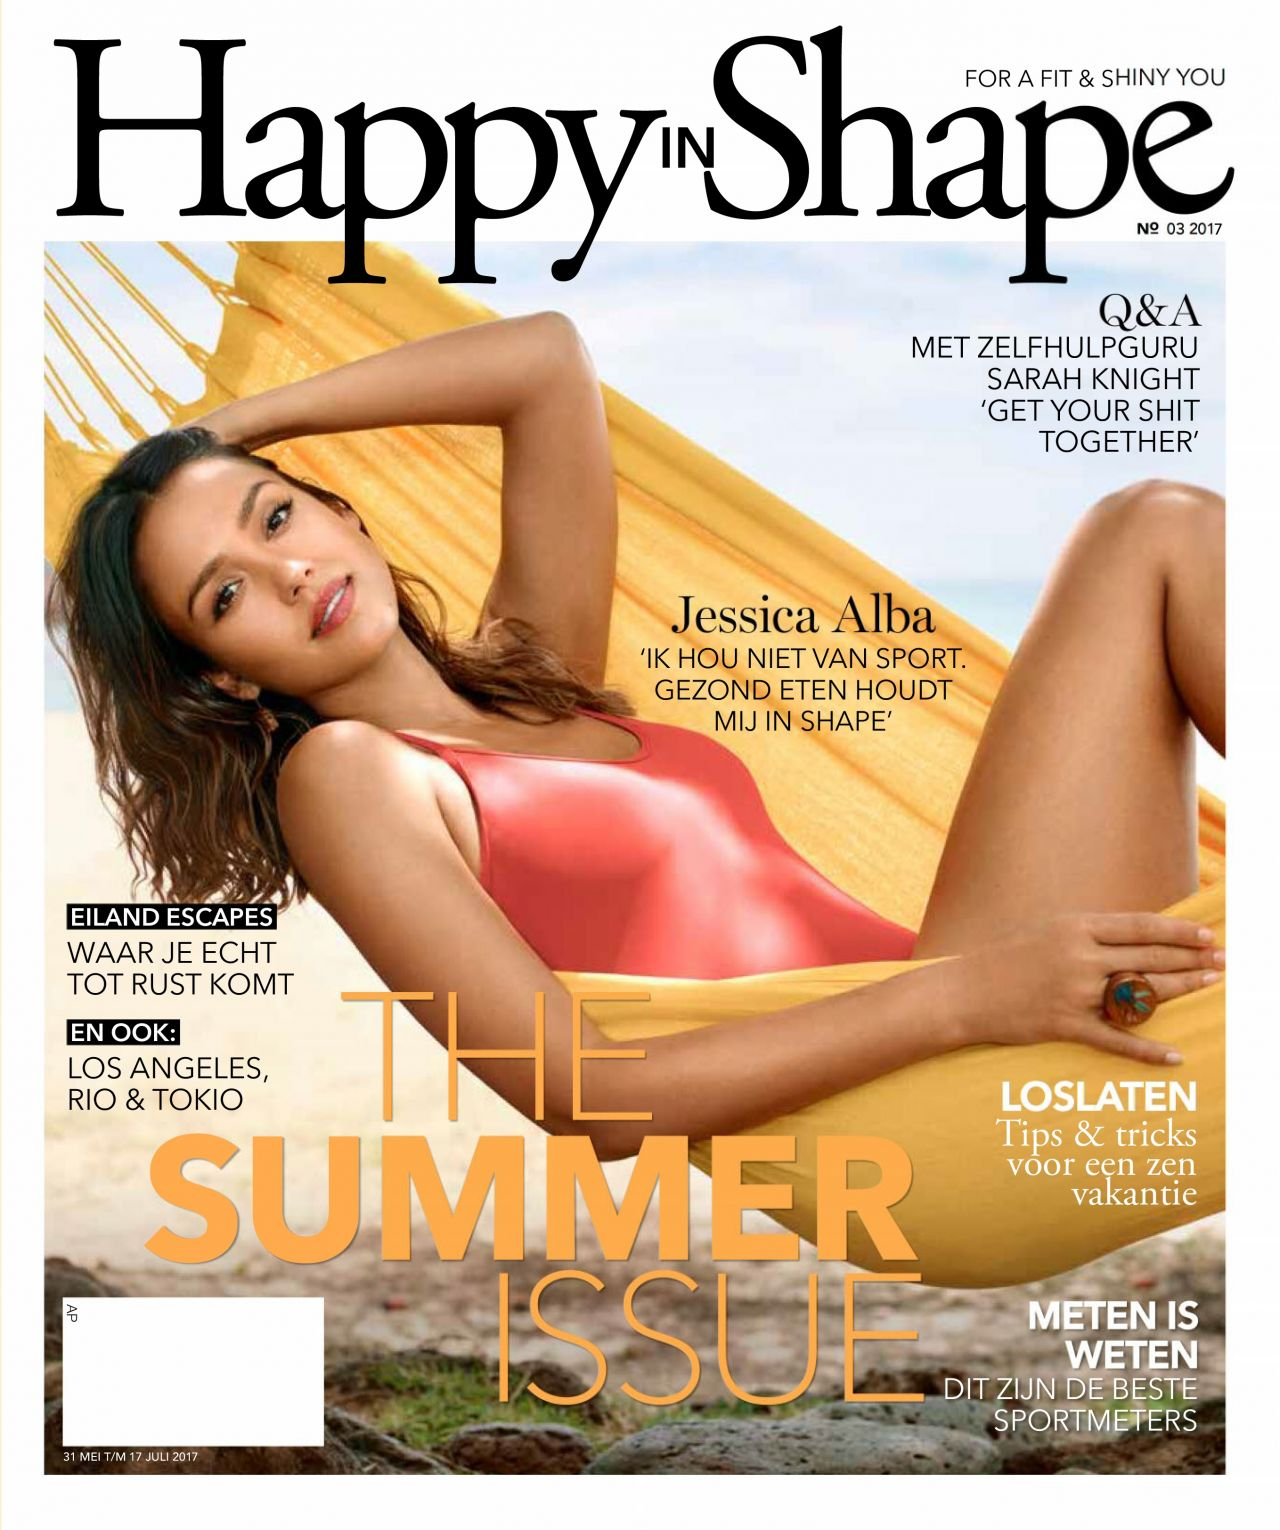 Jessica Alba - Happy in Shape MAgazine May / July 2017 Issue